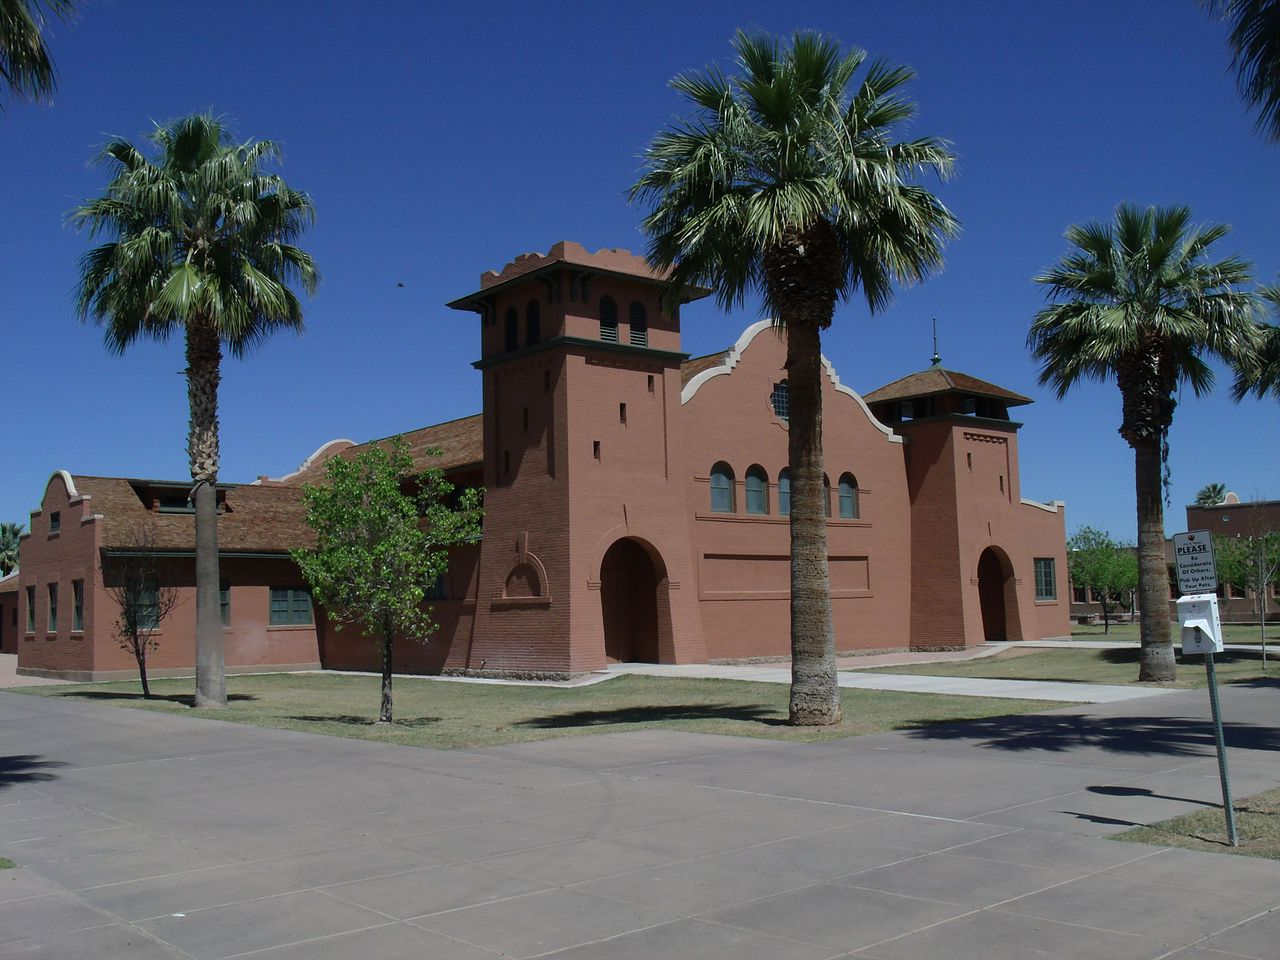 Inter Tribal Council of Arizona files trust mismanagement case